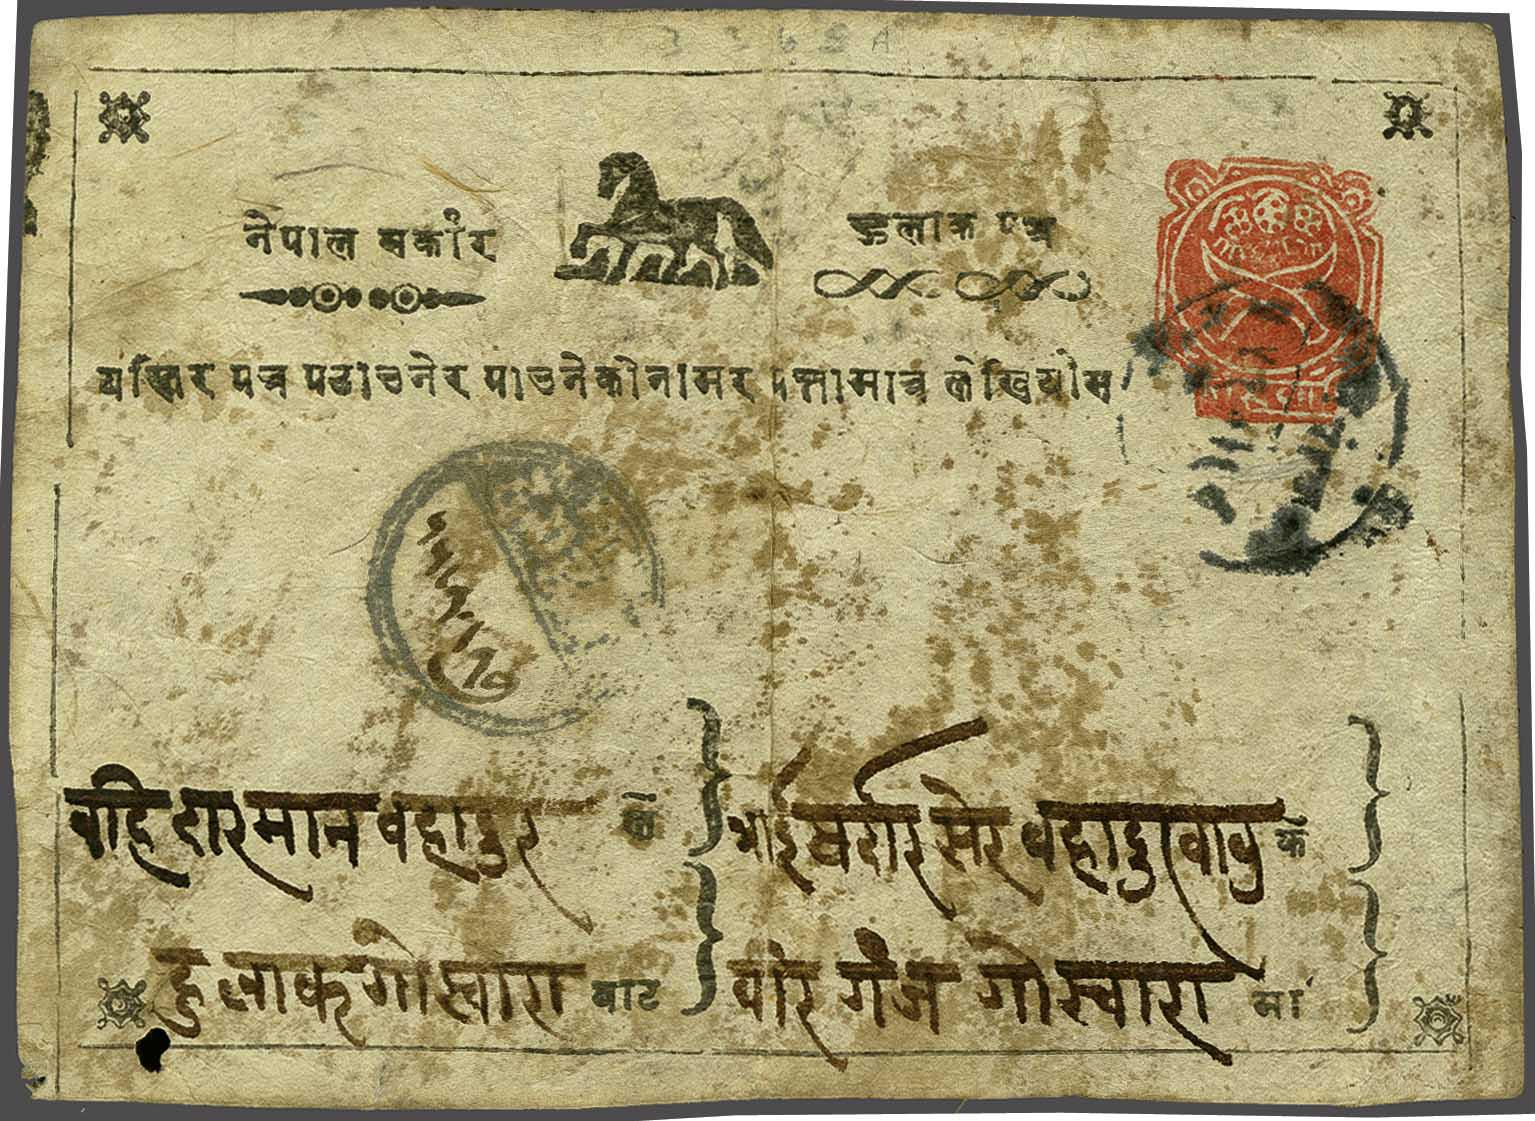 Lot 17 - Great Britain and former colonies Nepal -  Corinphila Veilingen Auction 245-246 Day 1 - Nepal - The Dick van der Wateren Collection, Foreign countries - Single lots, Picture postcards